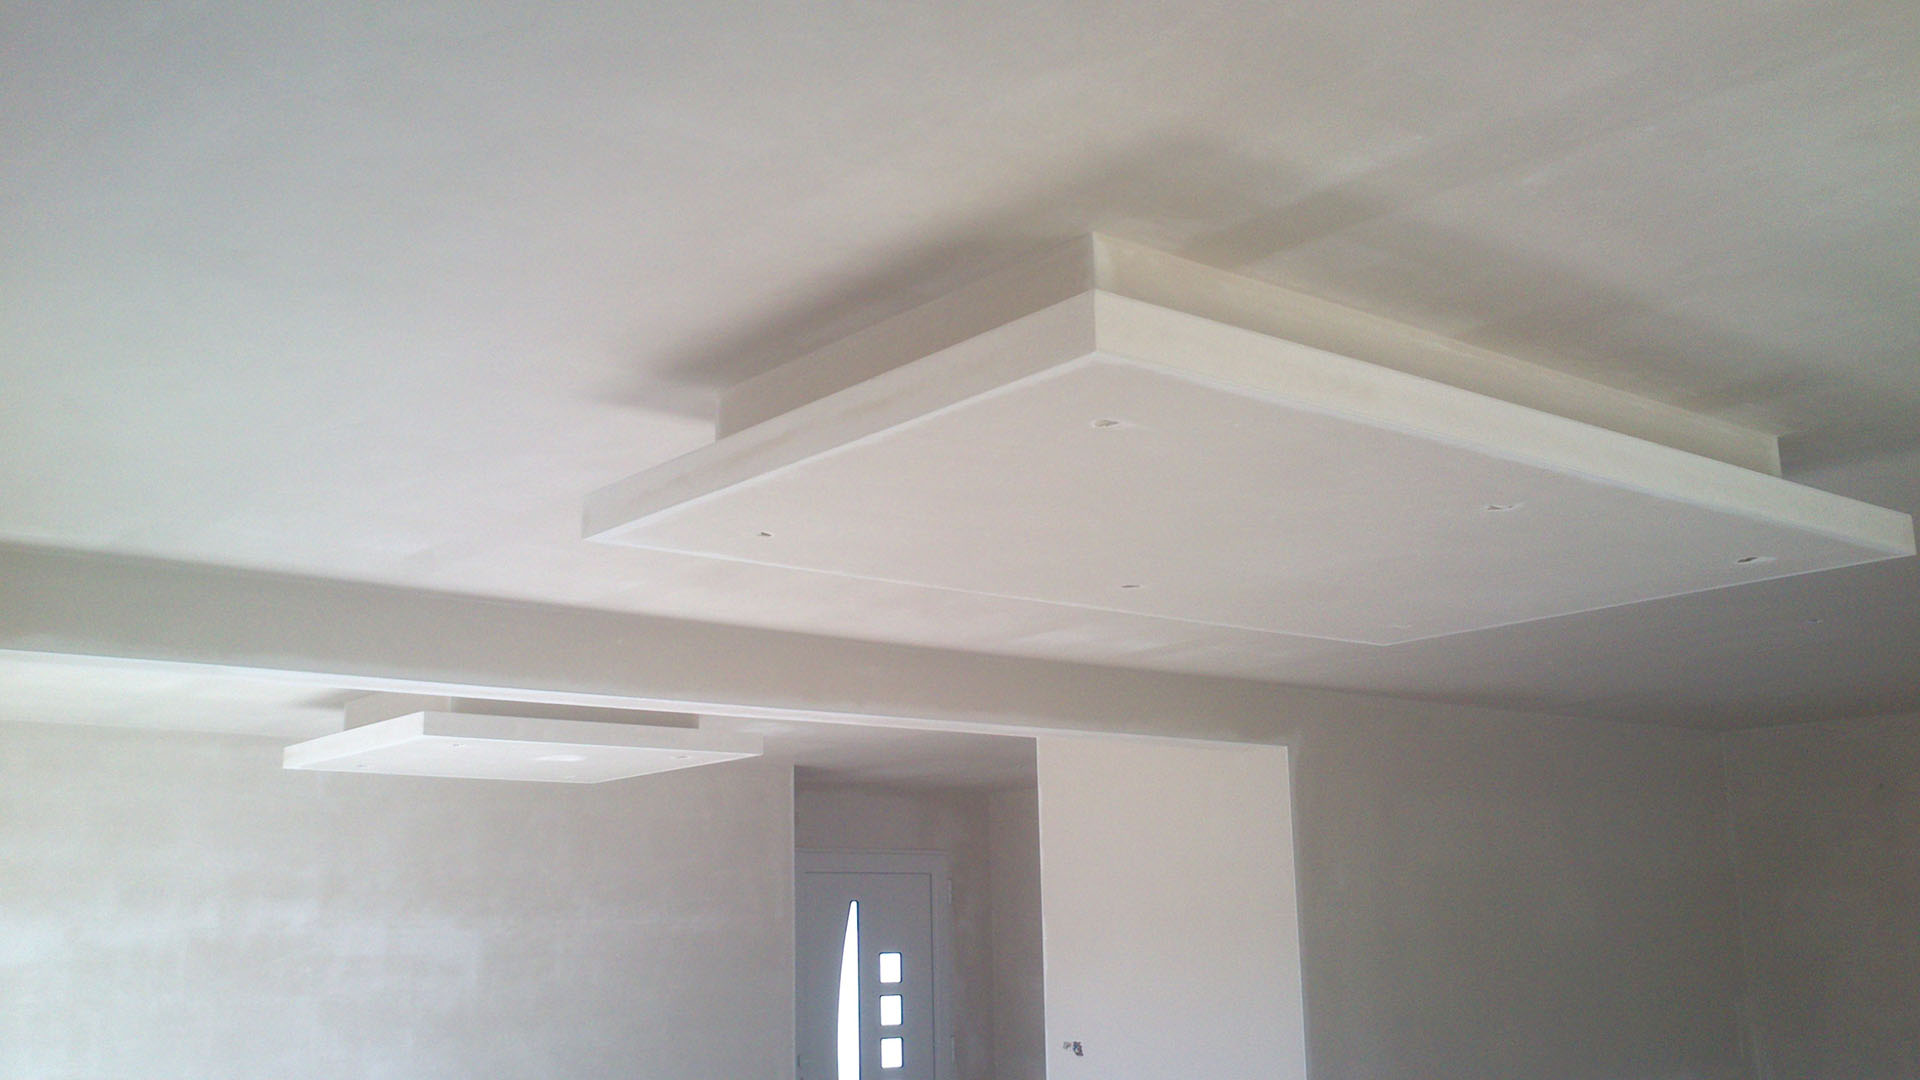 Platrier brest finist re 29 iroise platrerie for Modele de plafond decoratif